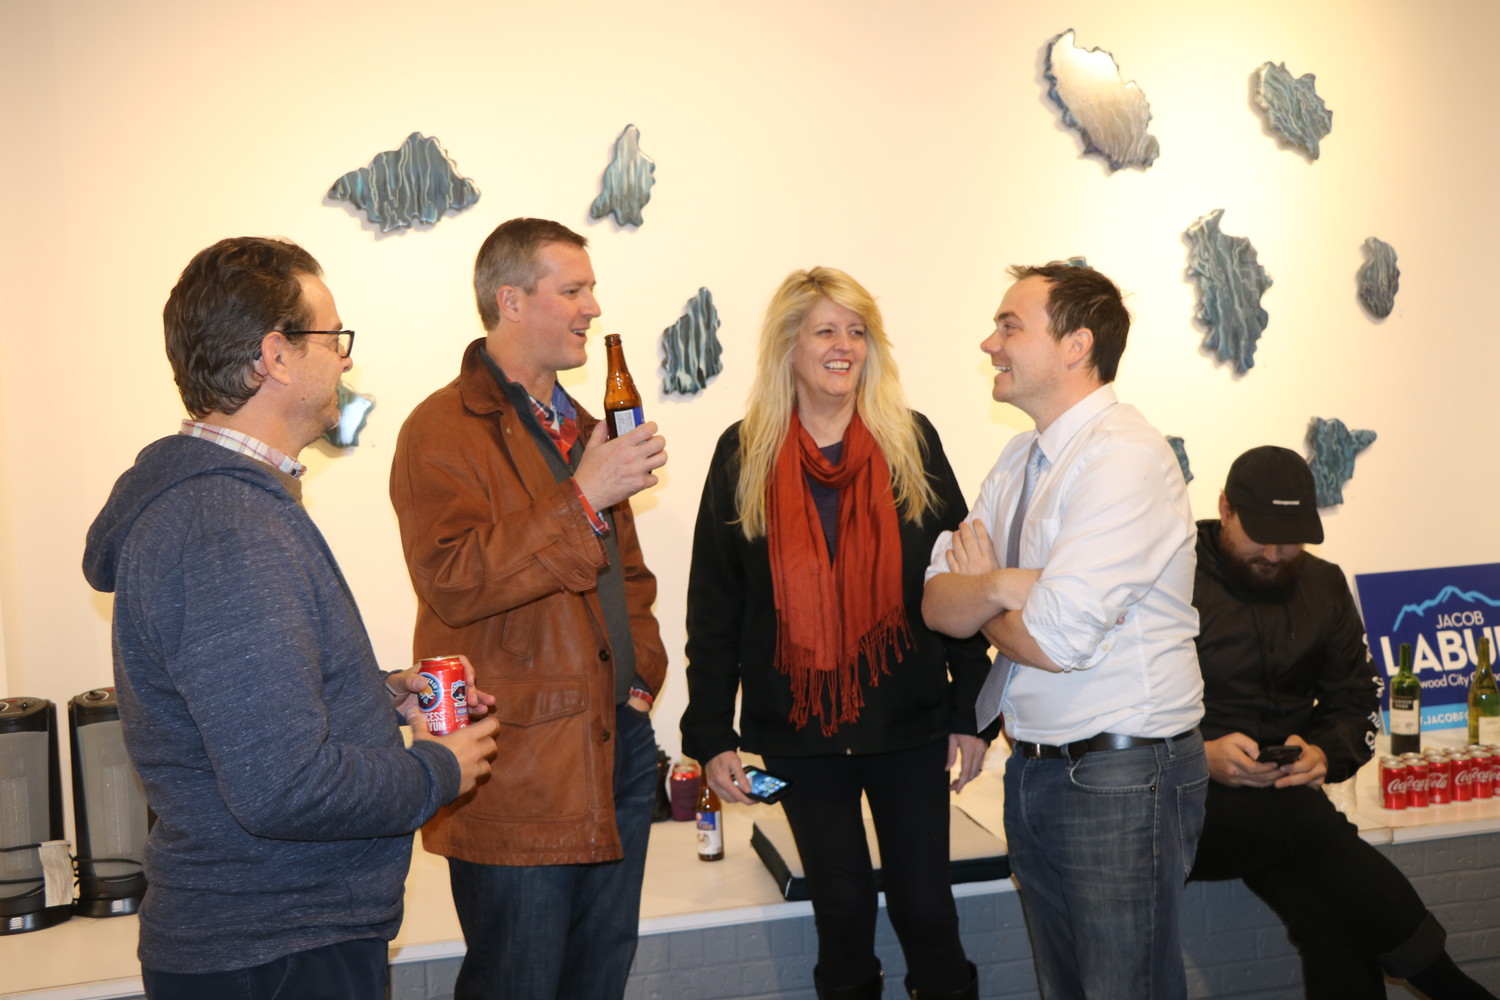 Ward 2 candidate Jacob LaBure celebrated a positive election with friends and supporters at the NEXT Gallery in the 40 West Arts District.